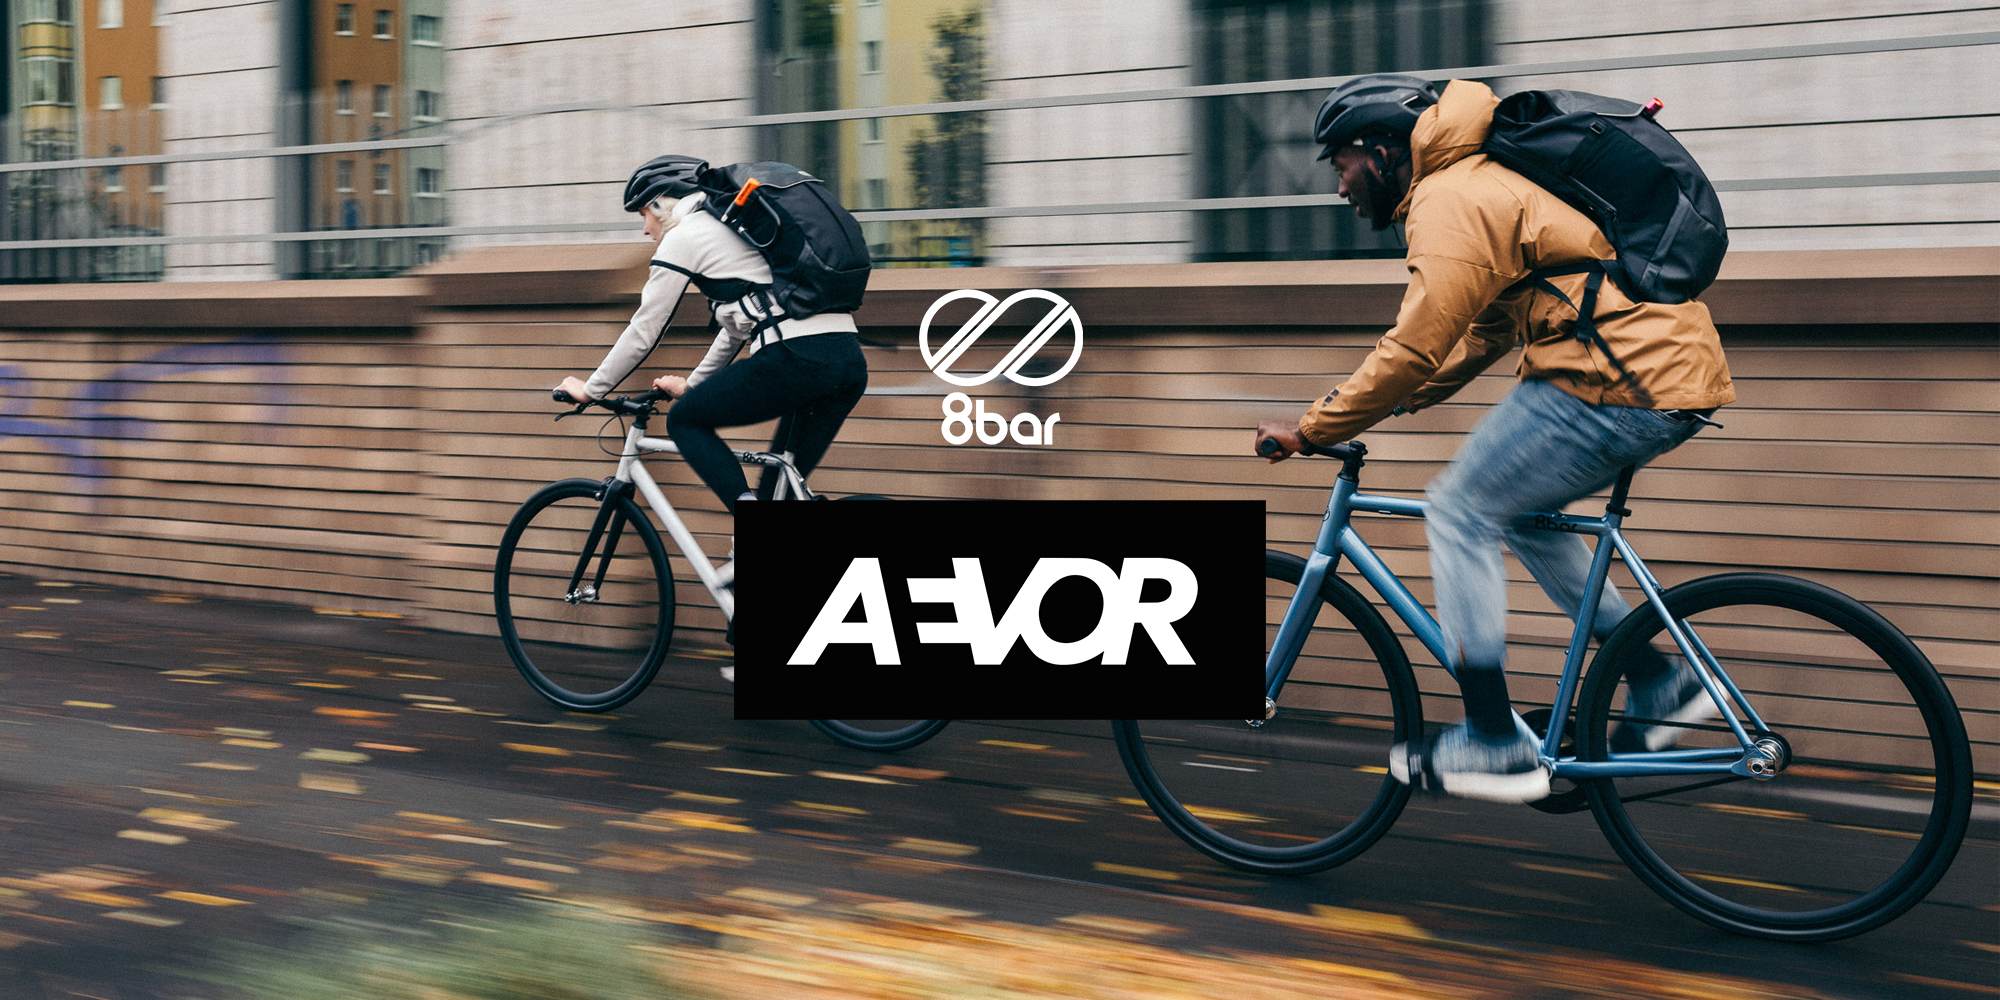 8bar aevor image with two cyclists